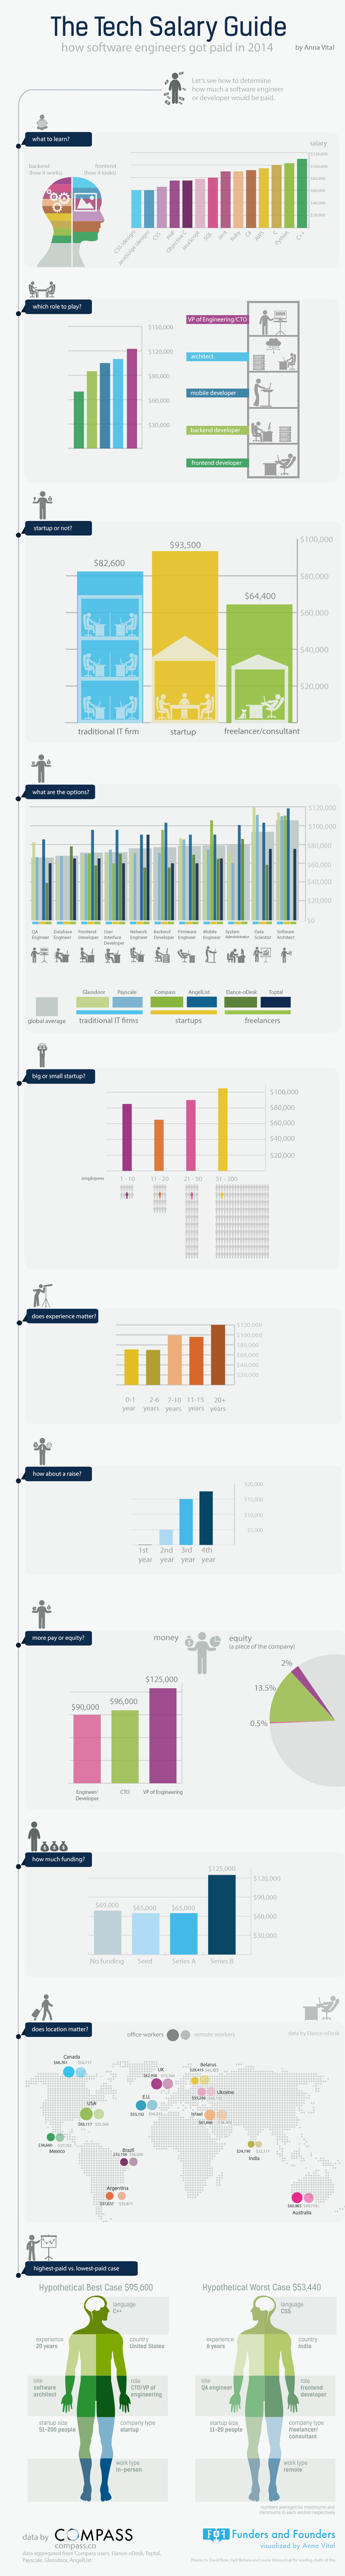 Tech salary guide 2014 © compass.co & Funders and Founders